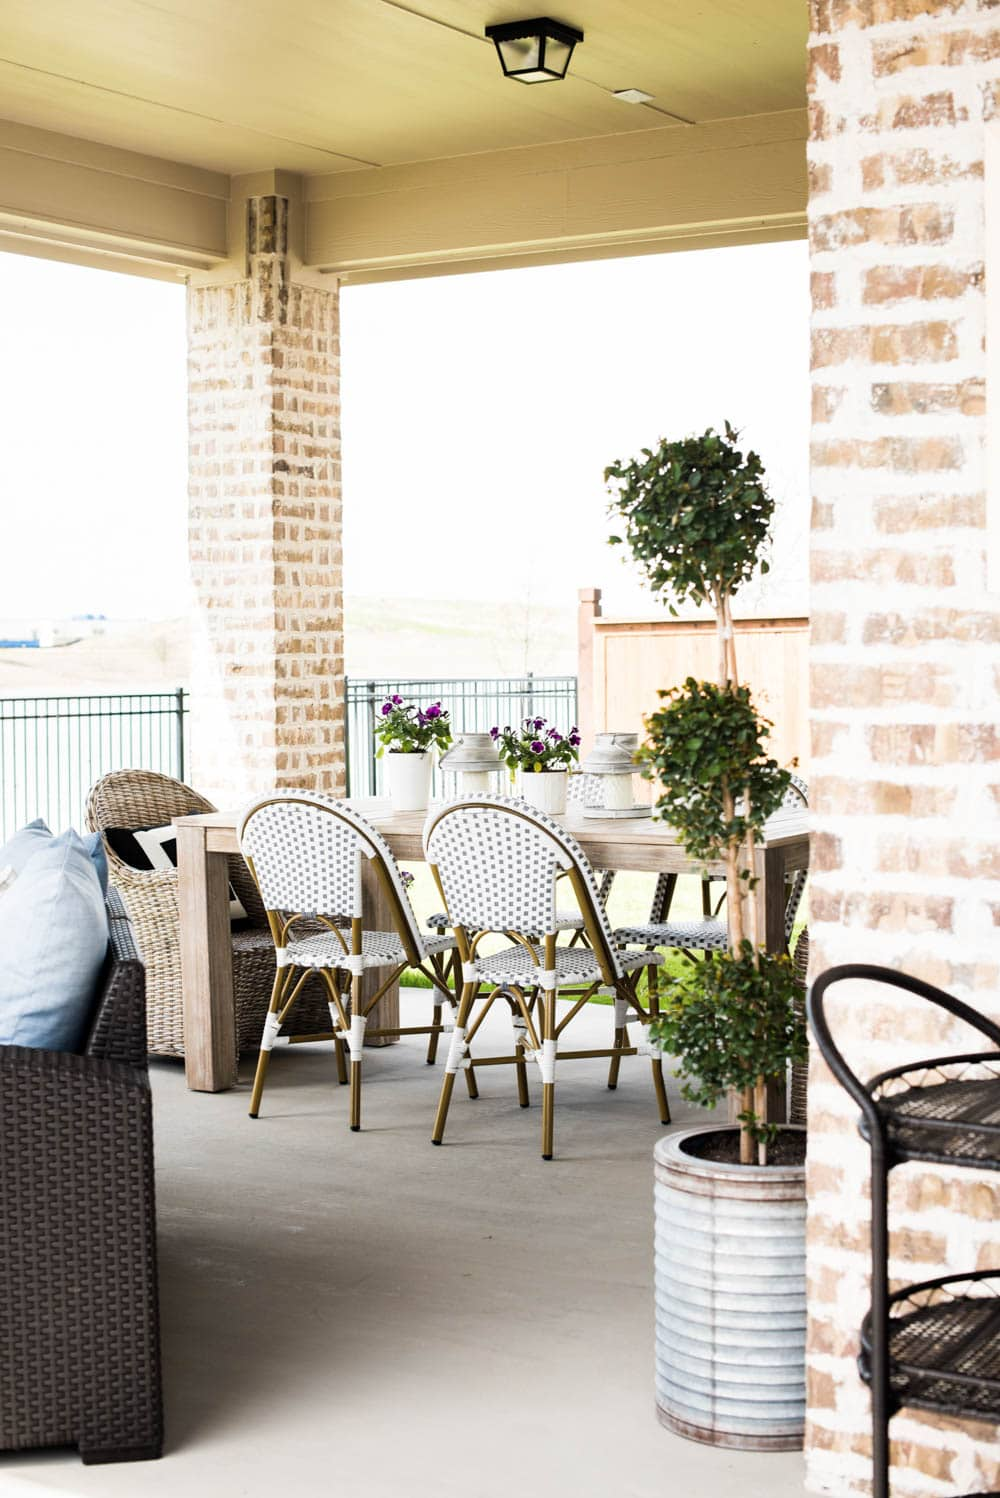 Small Backyard Patio Ideas + My Outdoor Living Space Reveal on My Garden Outdoor Living id=46261